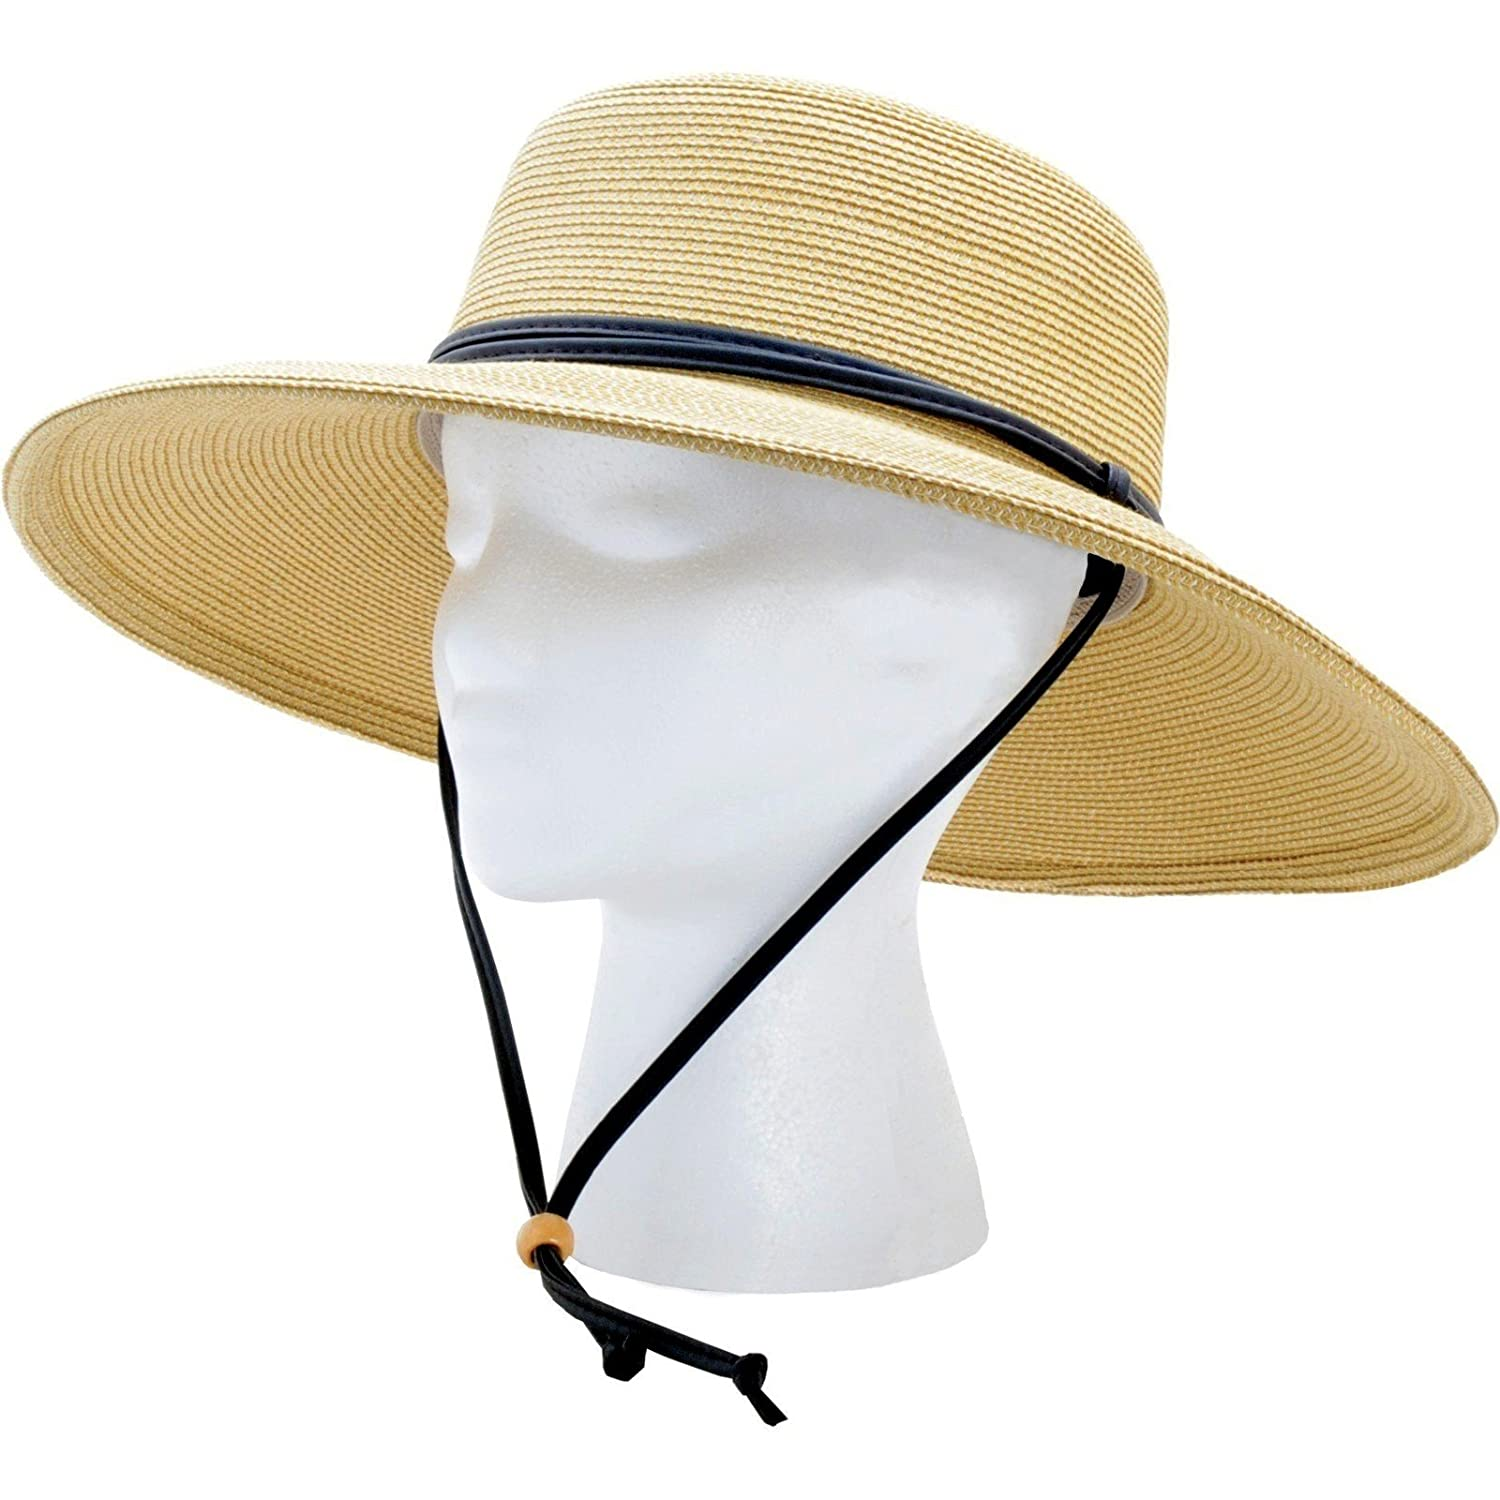 56f8f1b599d Women s Wide Brim Braided Sun Hat with Wind Lanyard - Light Brown - UPF 50+